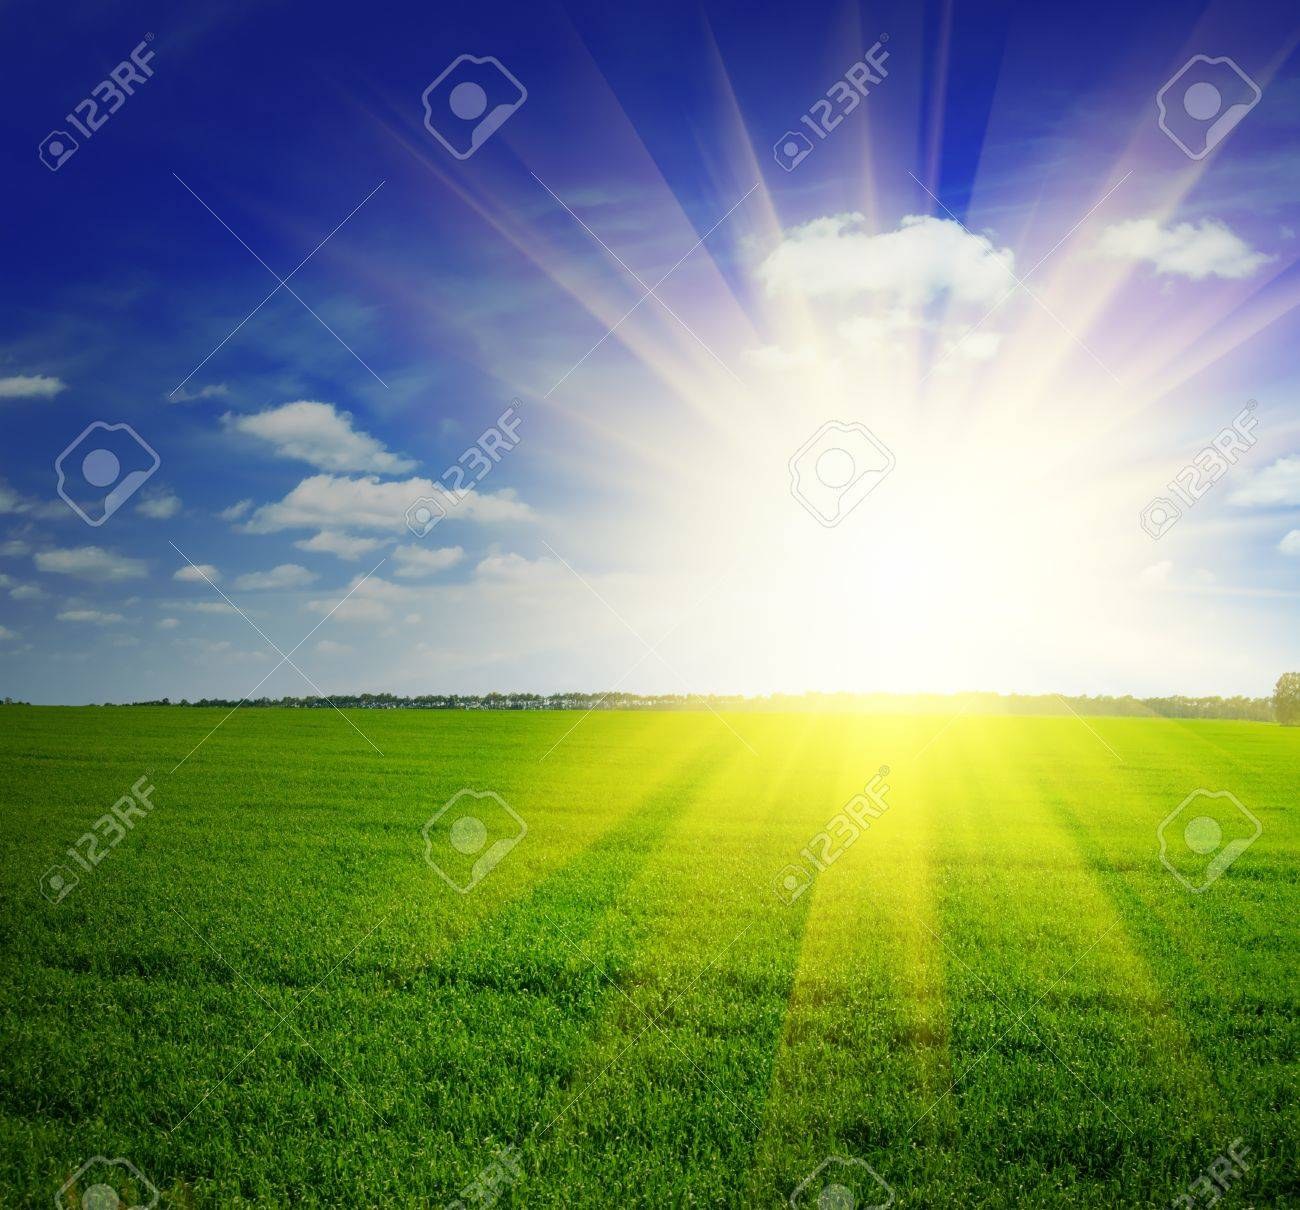 Beautiful summer landscape. Sky and grass. Stock Photo - 9315337